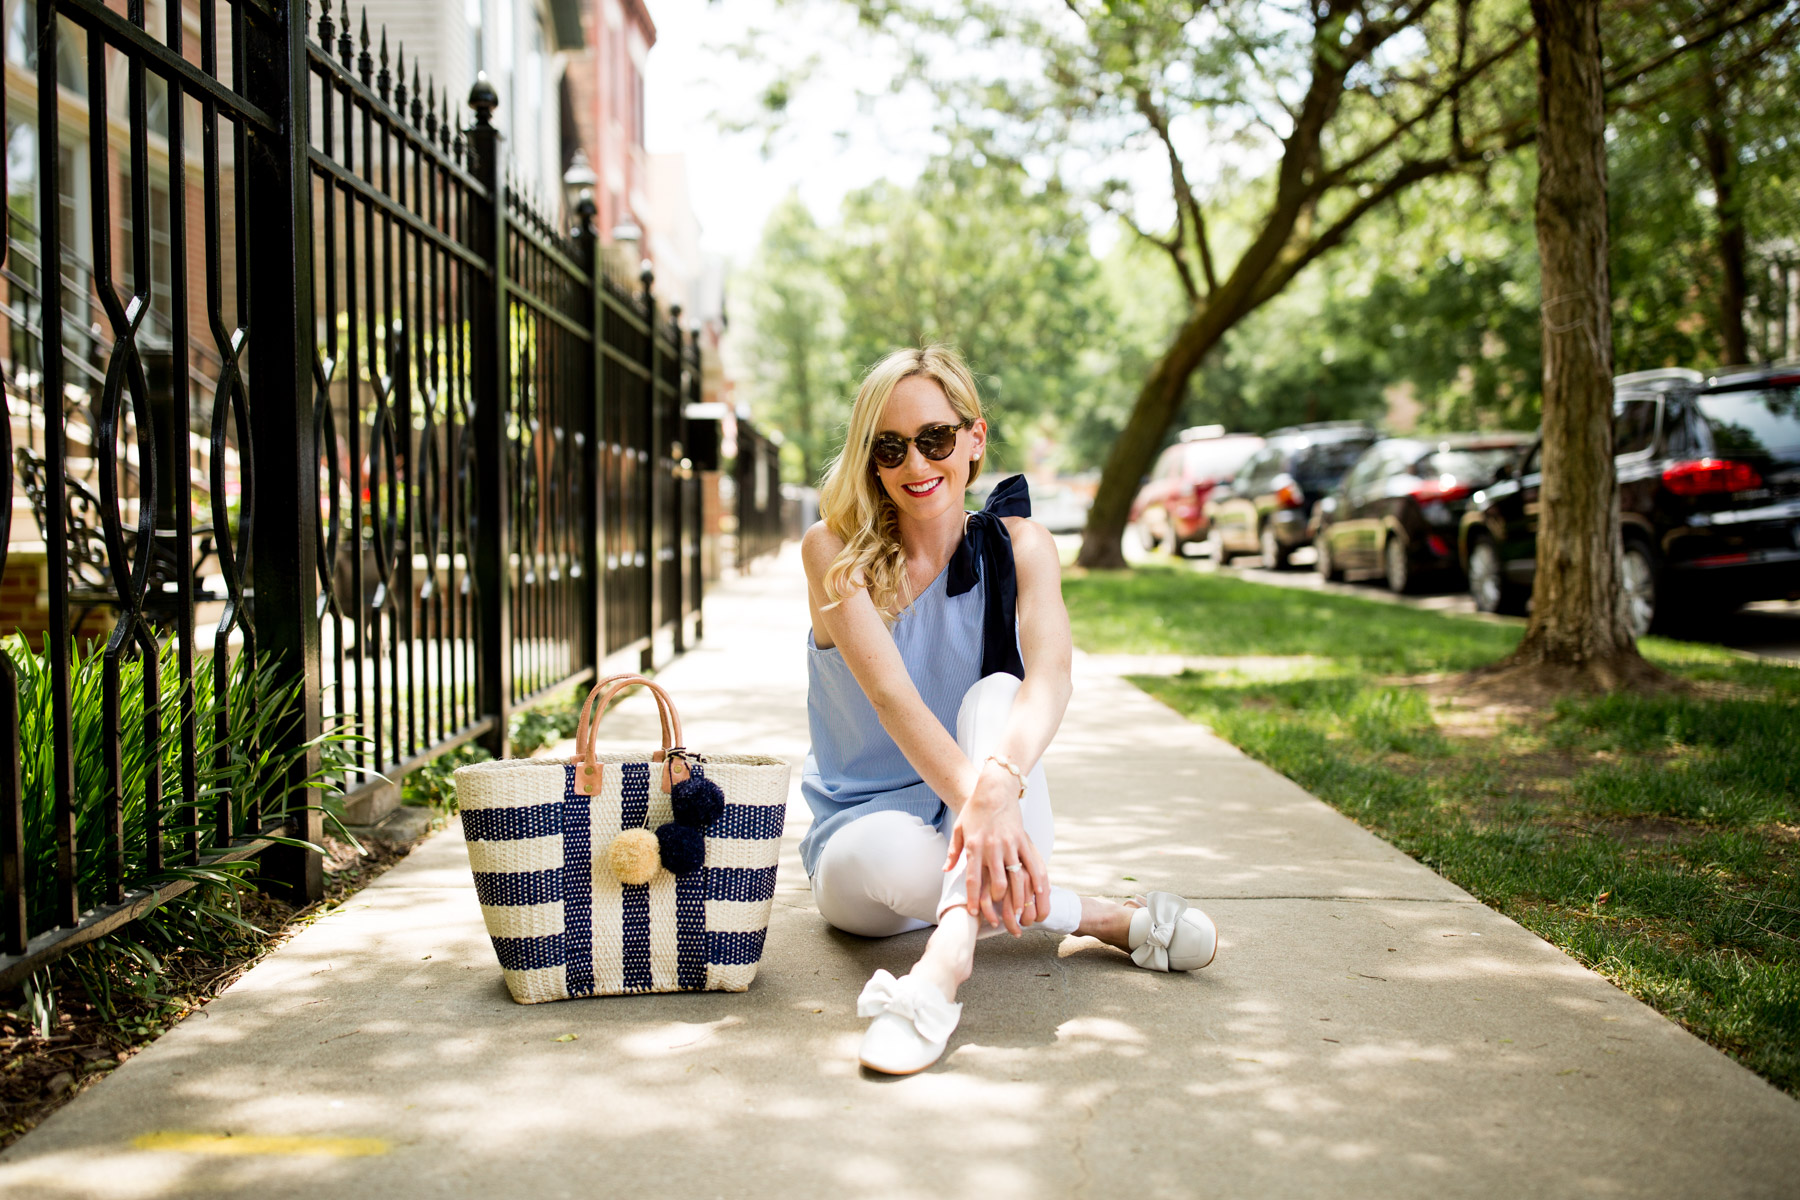 Scalloped Bow Top/ Bow Mules/ Newer Kendra Scott Bracelets t c/o/ Favorite White Skinny Jeans / Woven Tote